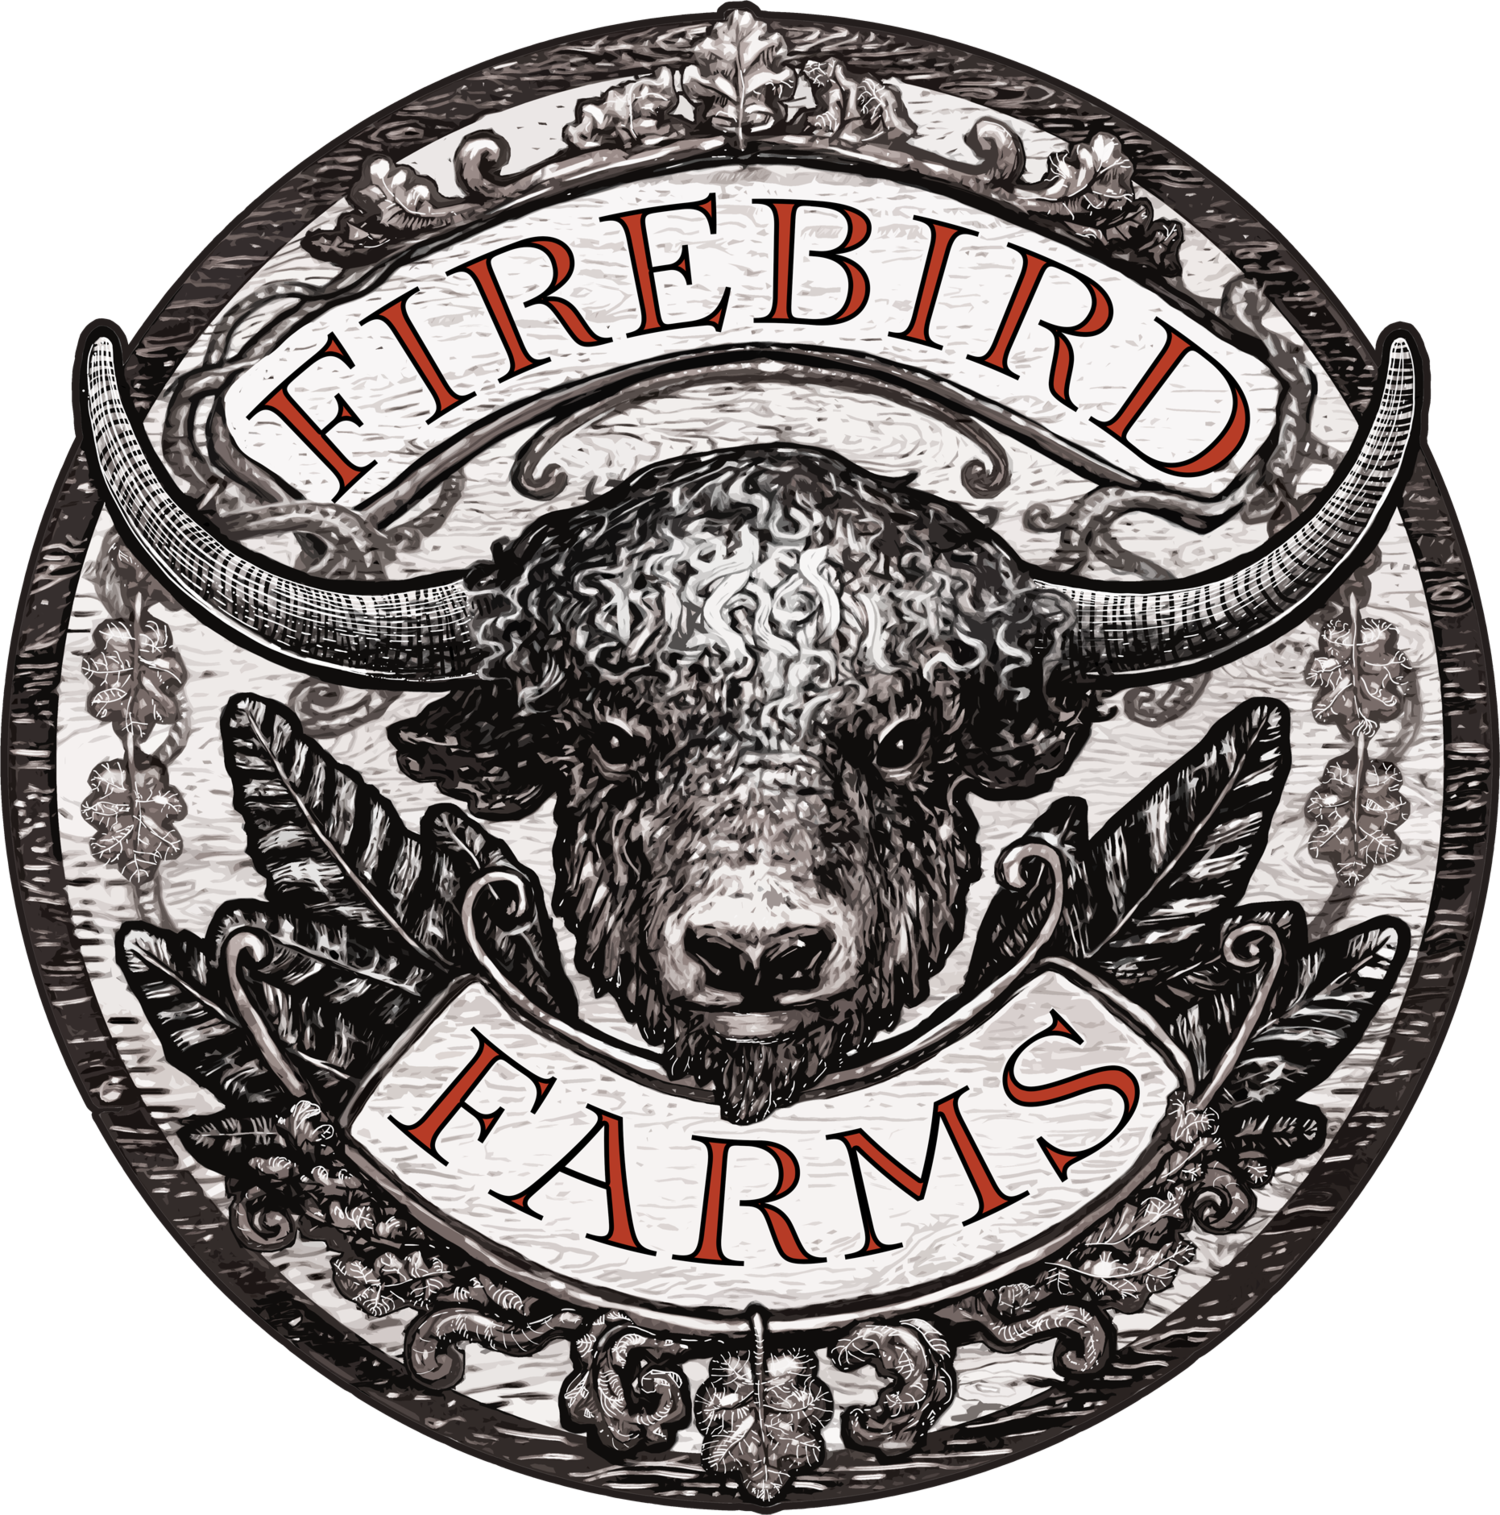 Sophia Weiss of    Firebird Farms